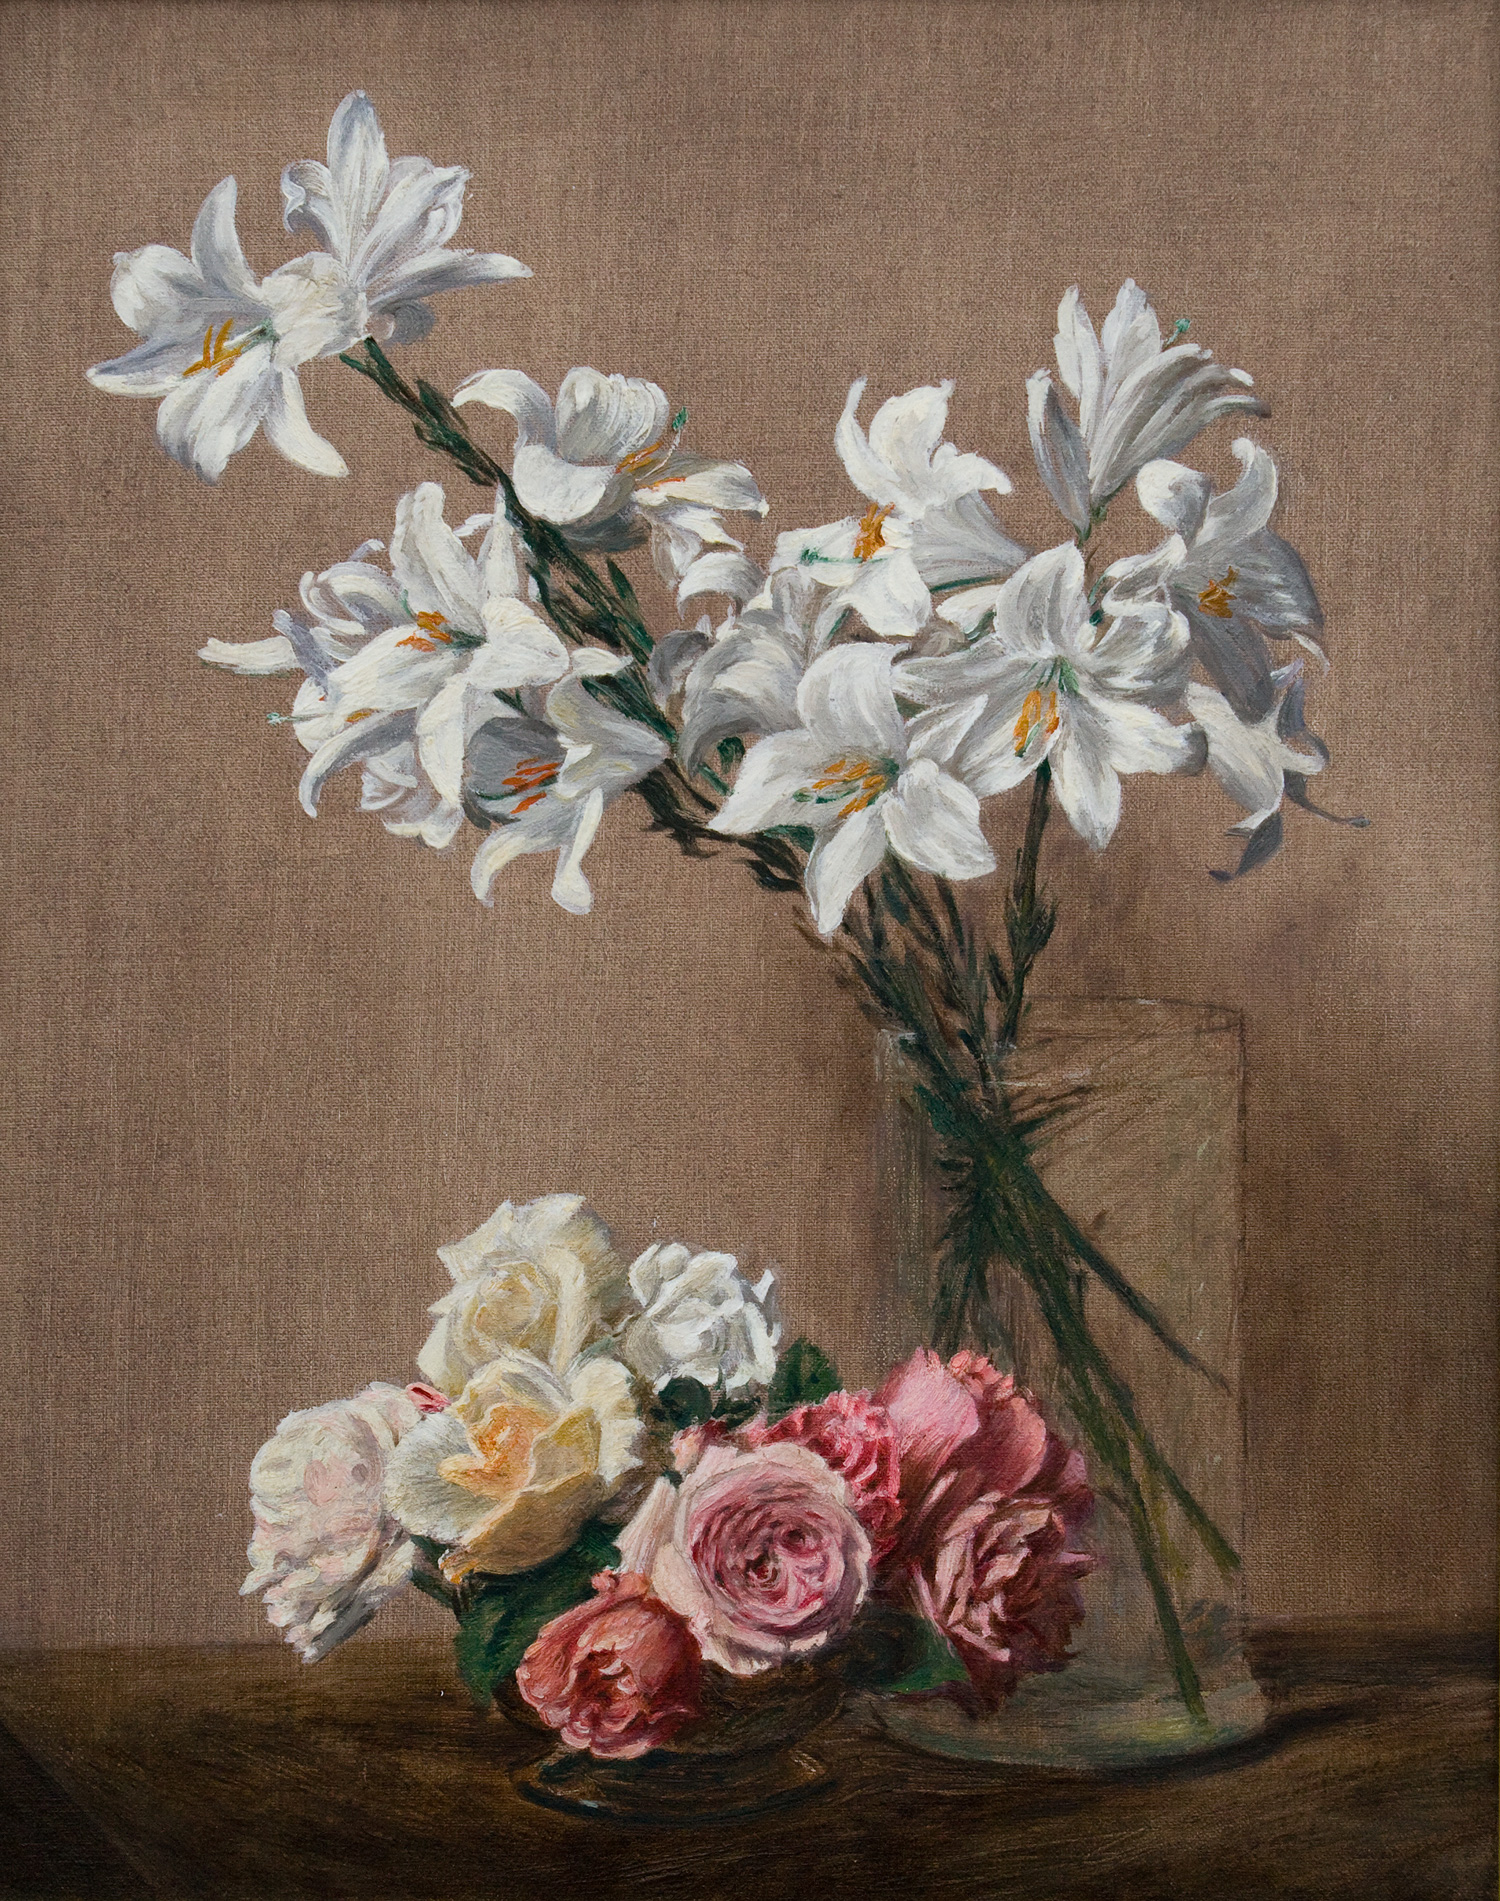 """Roses and Lillies  after Fantin-Latour  Oil 16"""" X 20"""" 2004 Painted from the original in the Metropolitan Museum of Art, NY NY"""